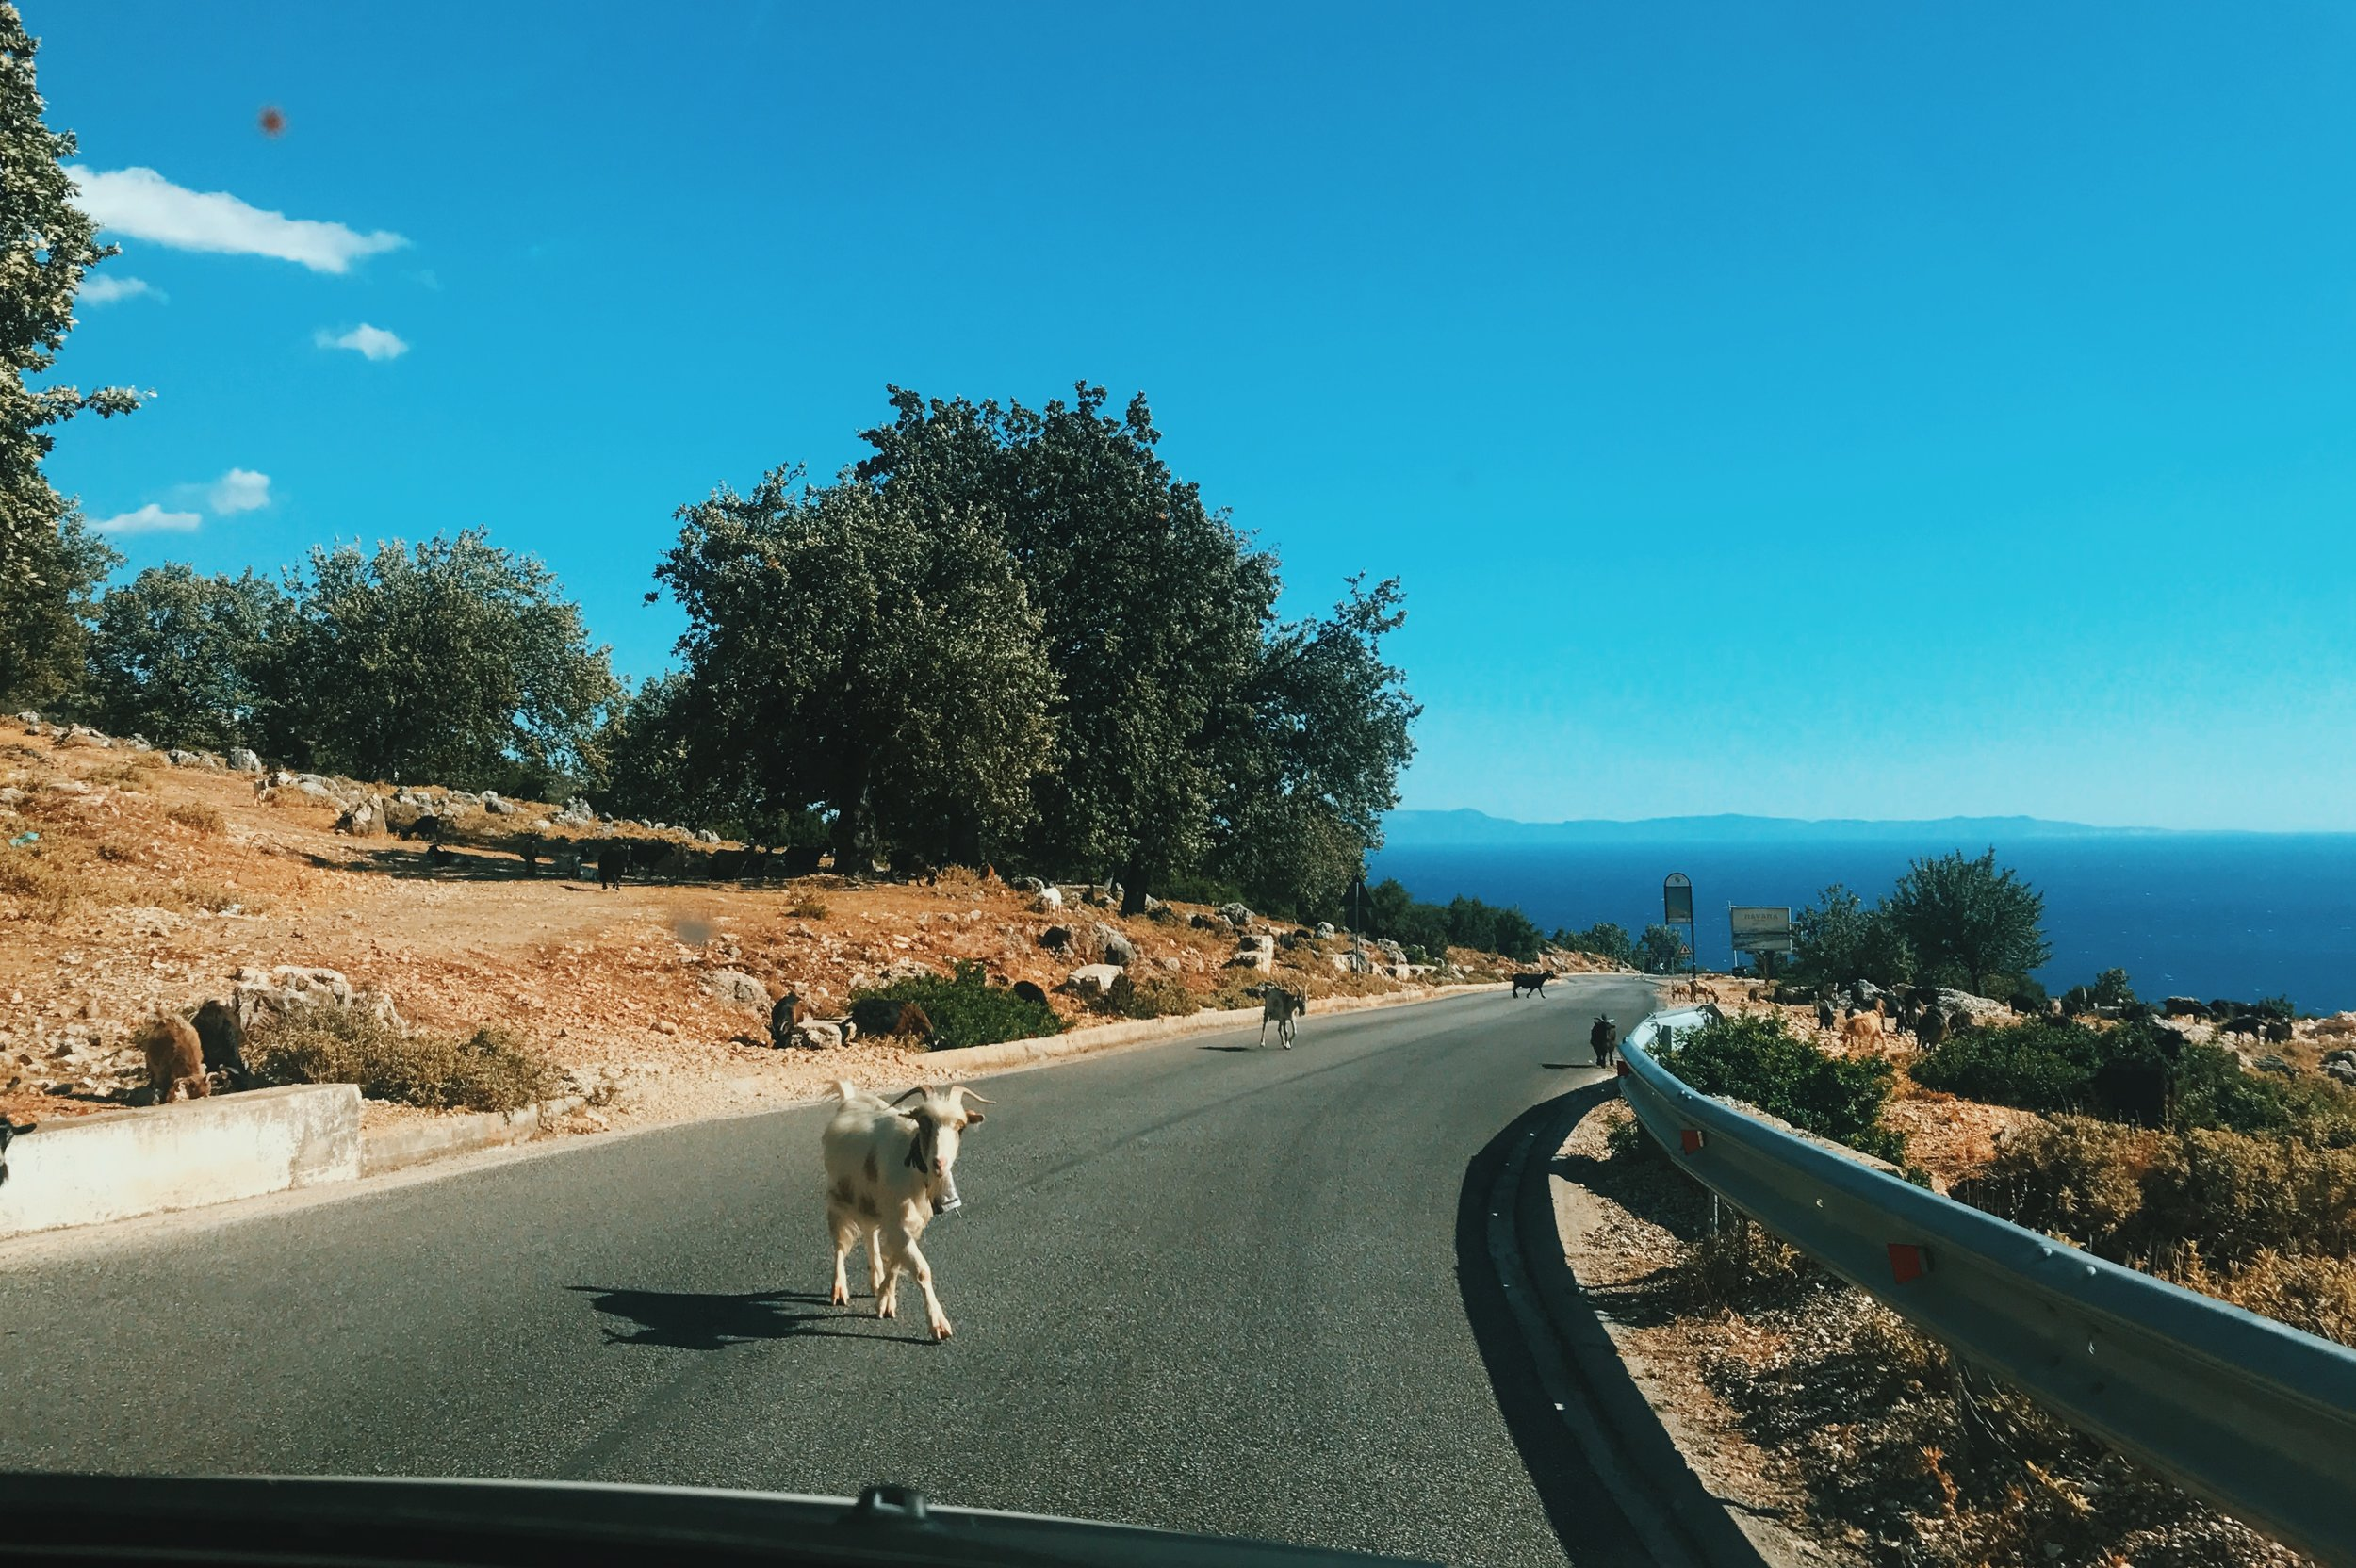 Goats on the road at the Llogara Pass in Albania